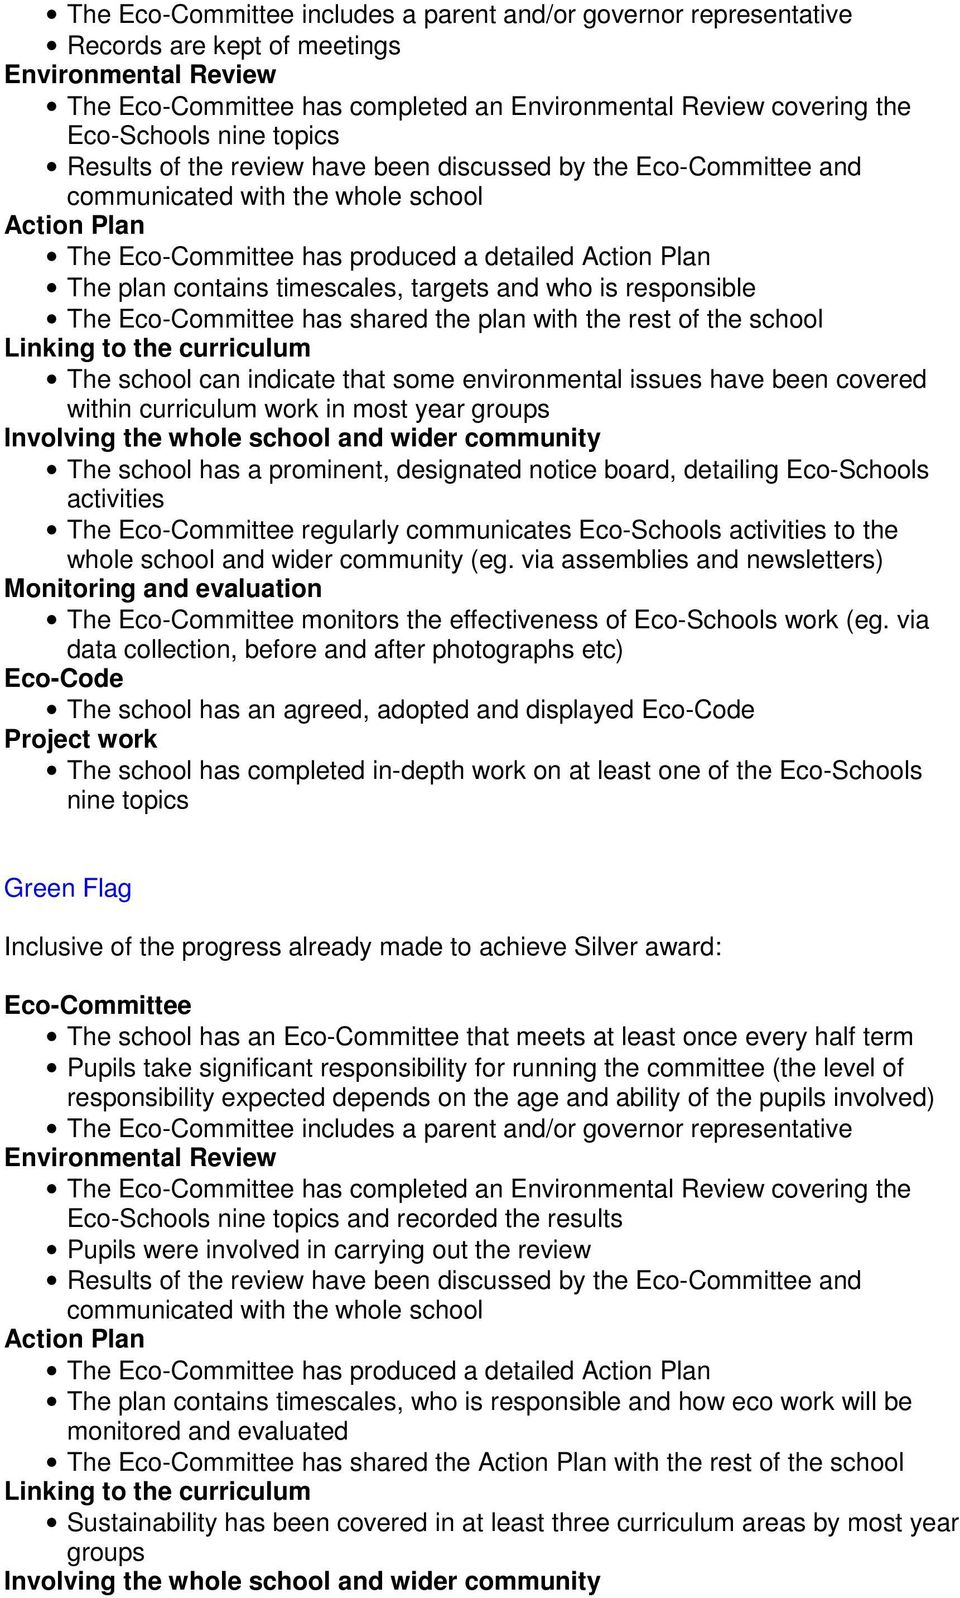 timescales, targets and who is responsible The Eco-Committee has shared the plan with the rest of the school Linking to the curriculum The school can indicate that some environmental issues have been